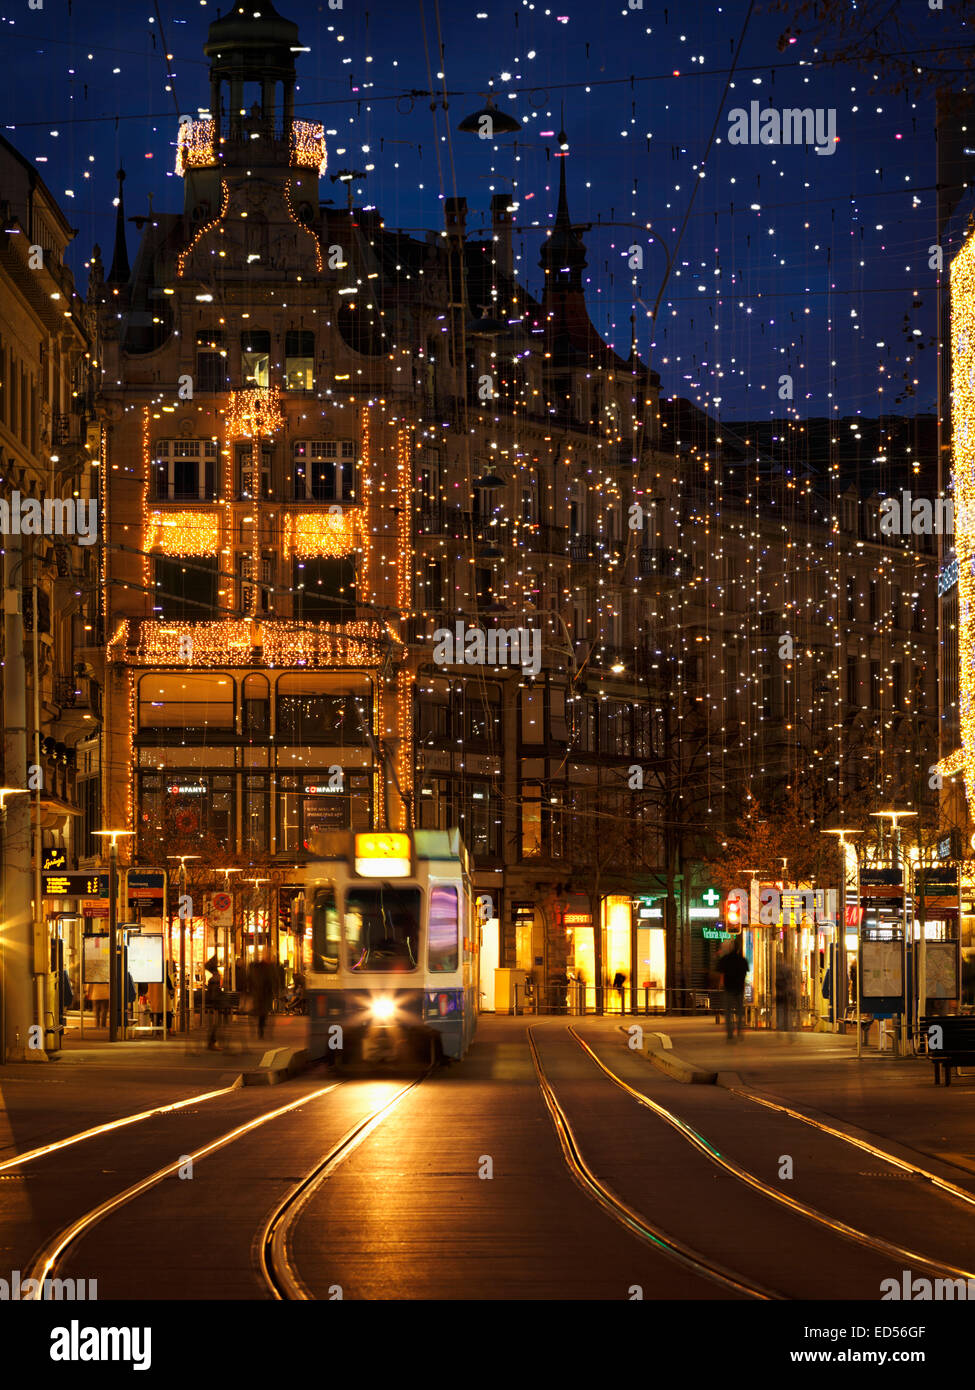 The 'Bahnhofstrasse' decorated with Christmas lights, Zurich, Switzerland. - Stock Image